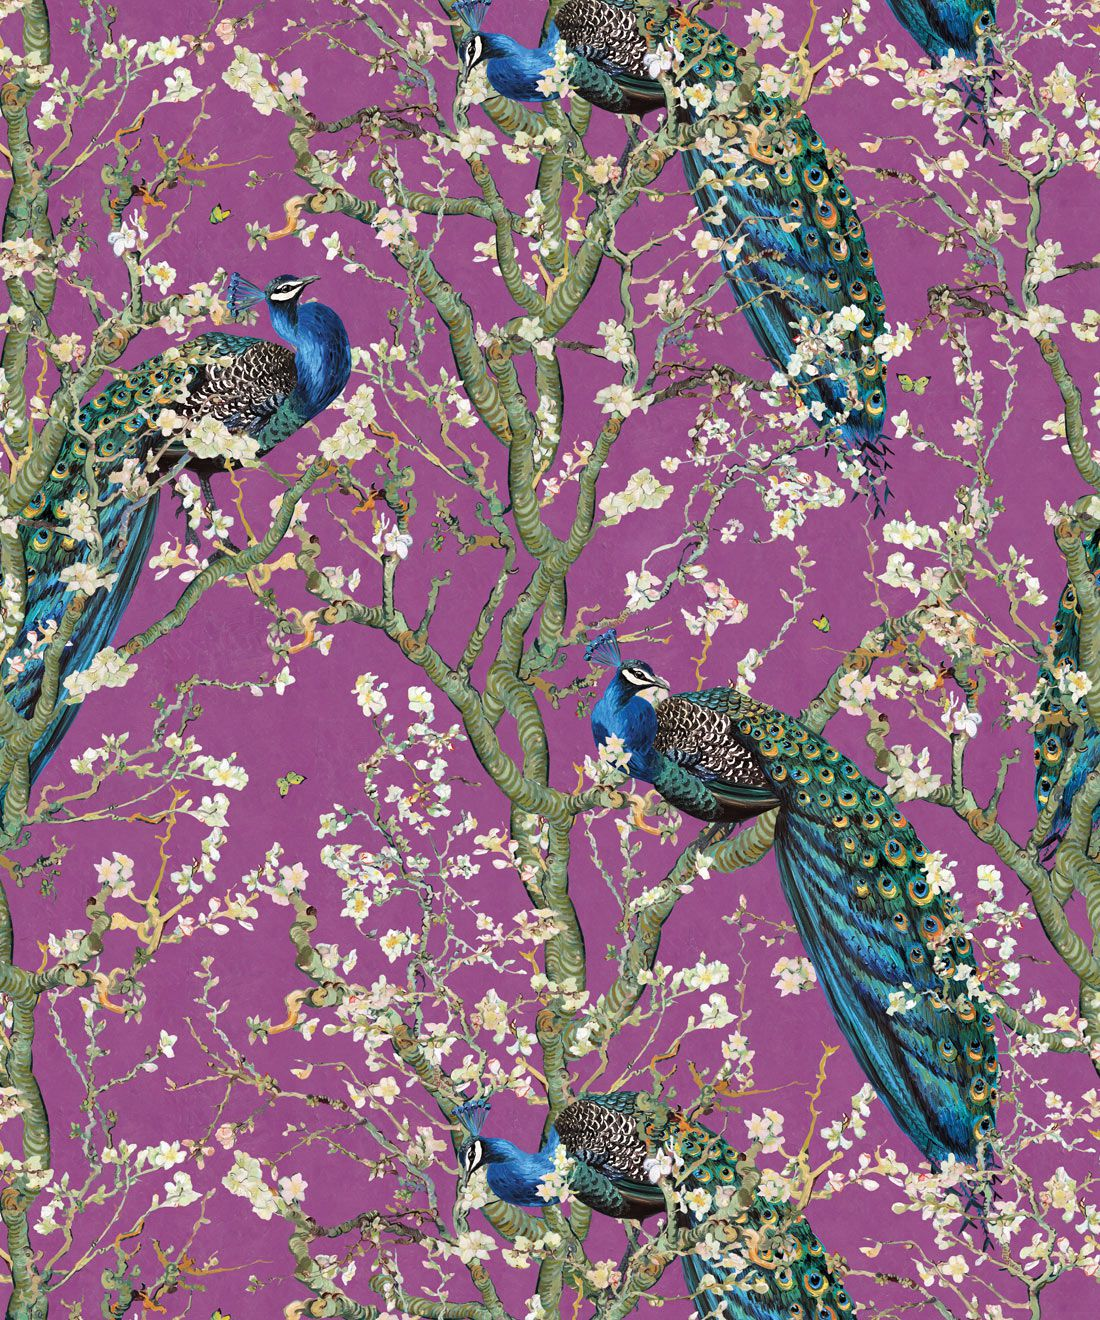 Almond Blossom Wallpaper • Chinoiserie Wallpaper • Wallpaper with Peacocks • Purple Eggplant Wallpaper •Swatch